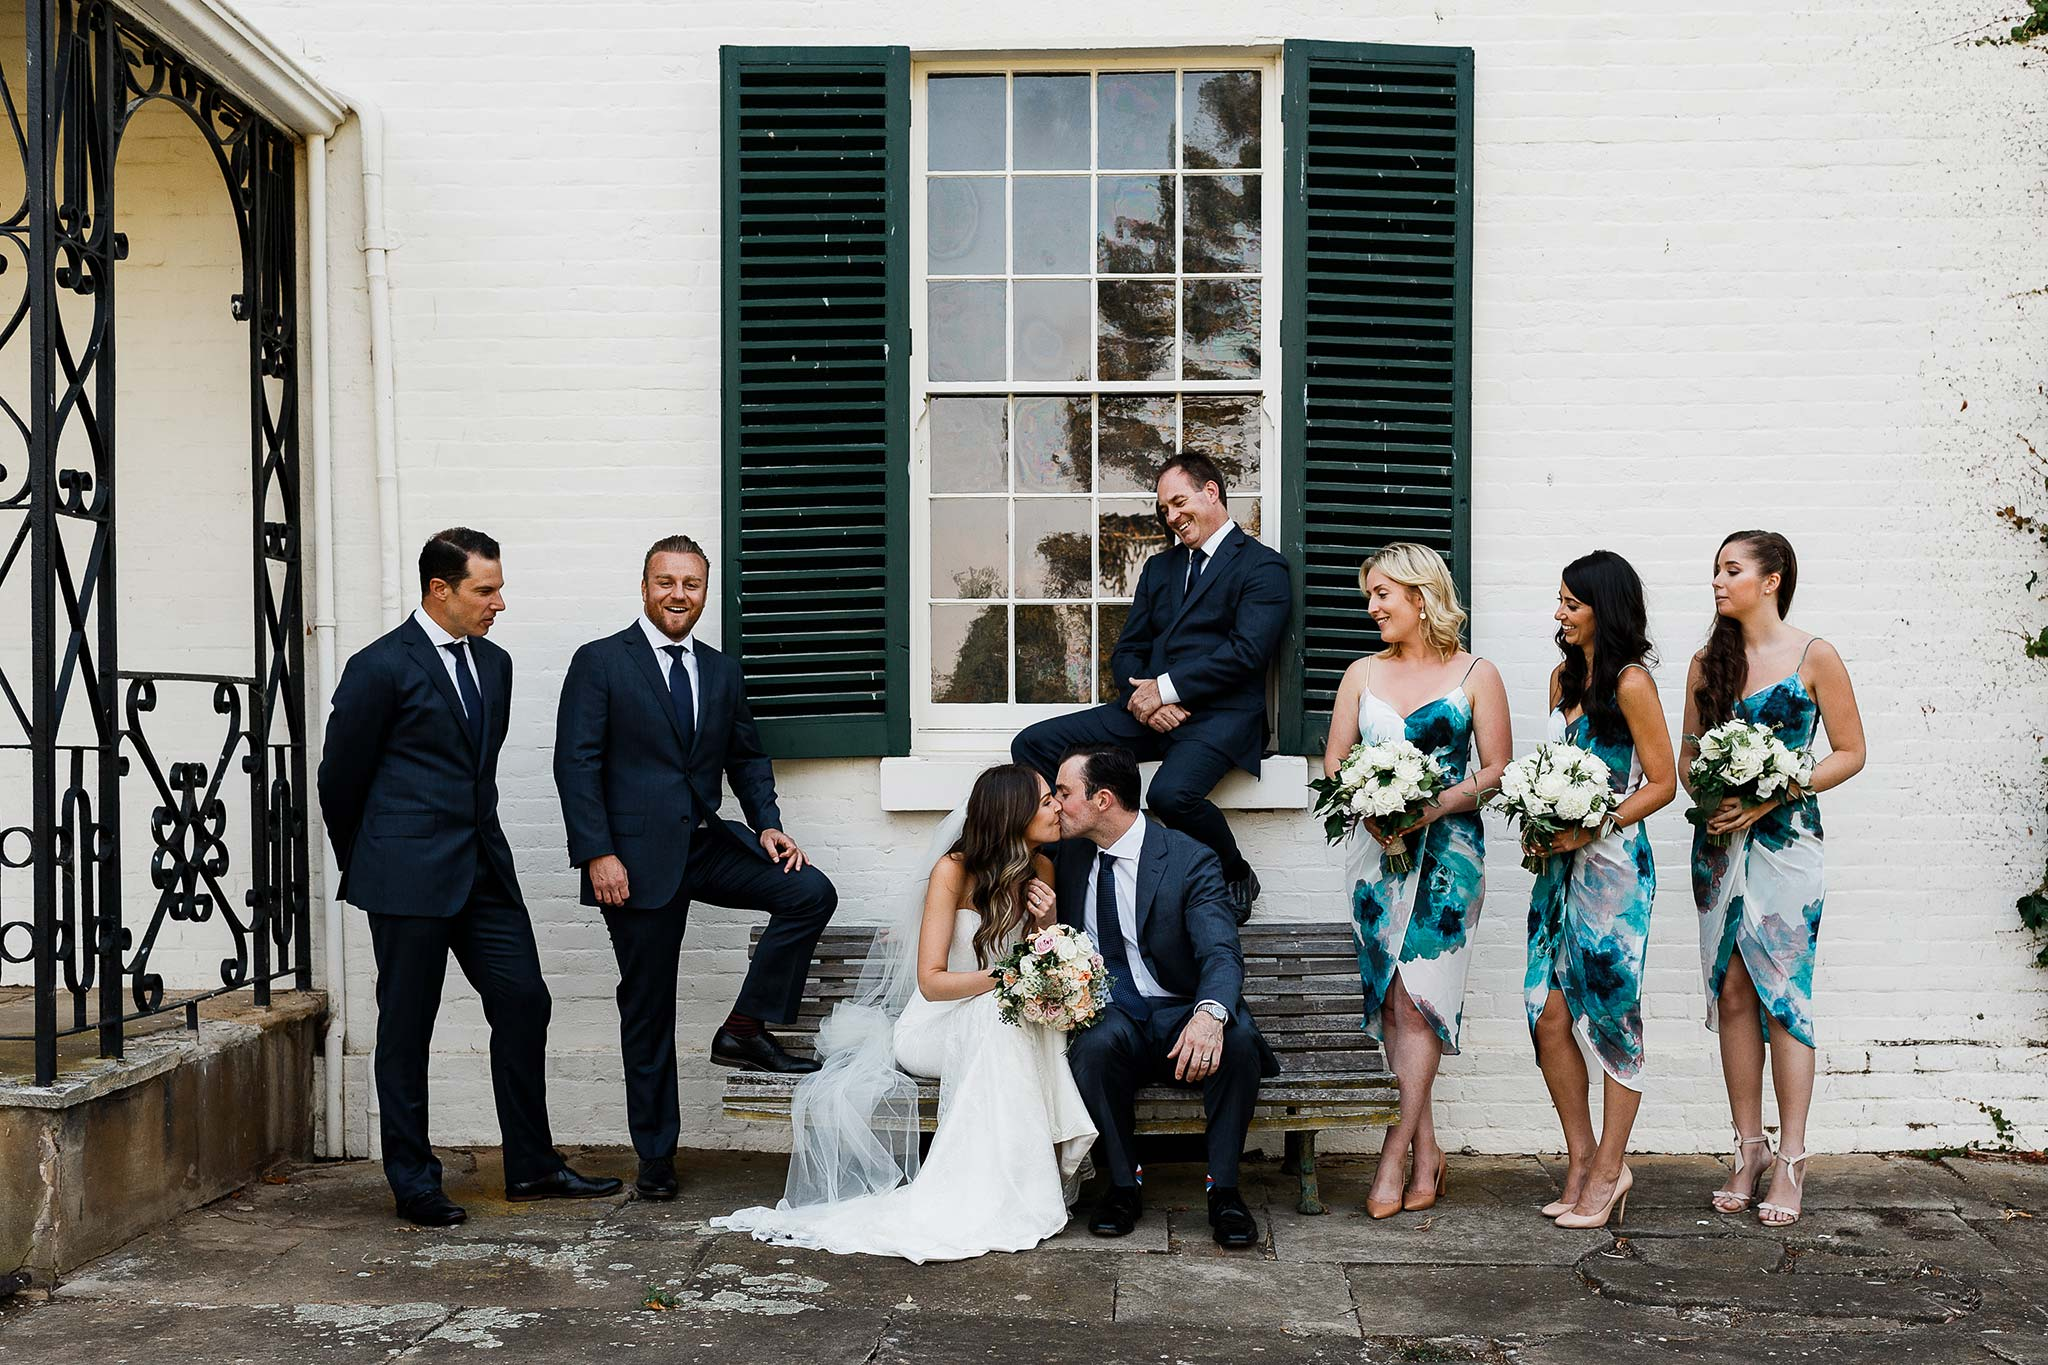 Launceston-Brickendon-Wedding-Photographer-bridal-party